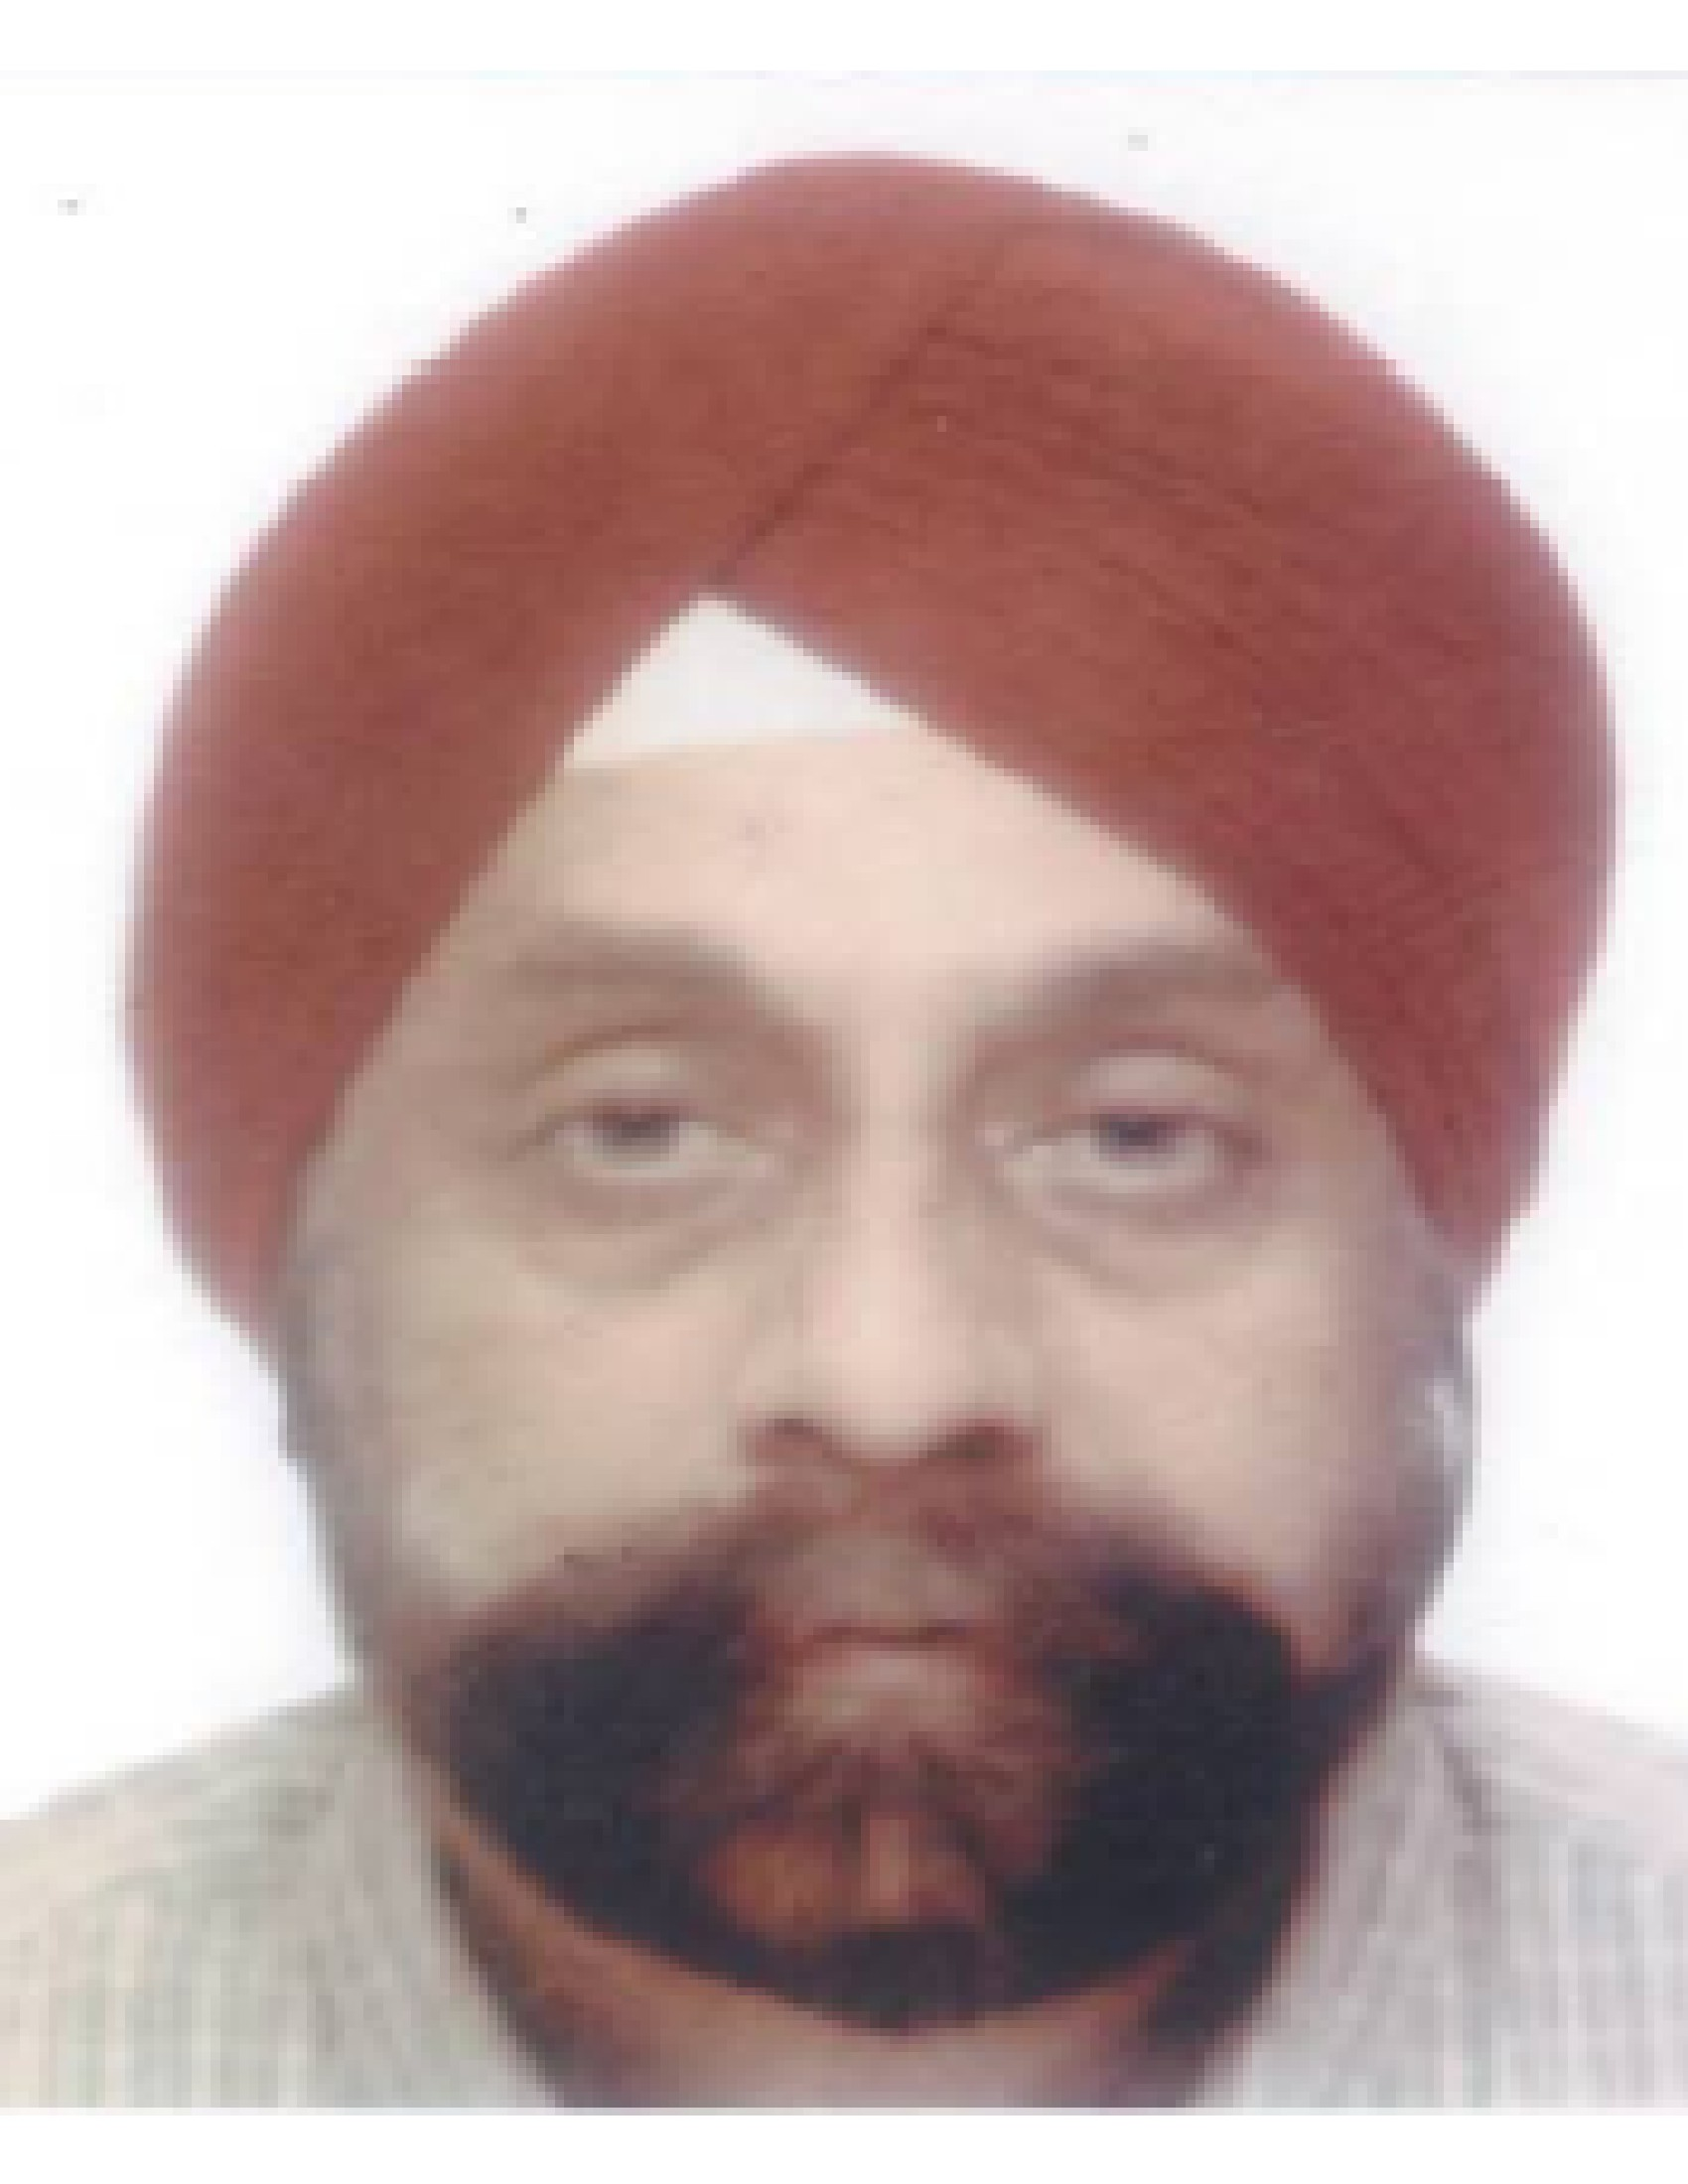 Mr. Harbans Singh Bagga